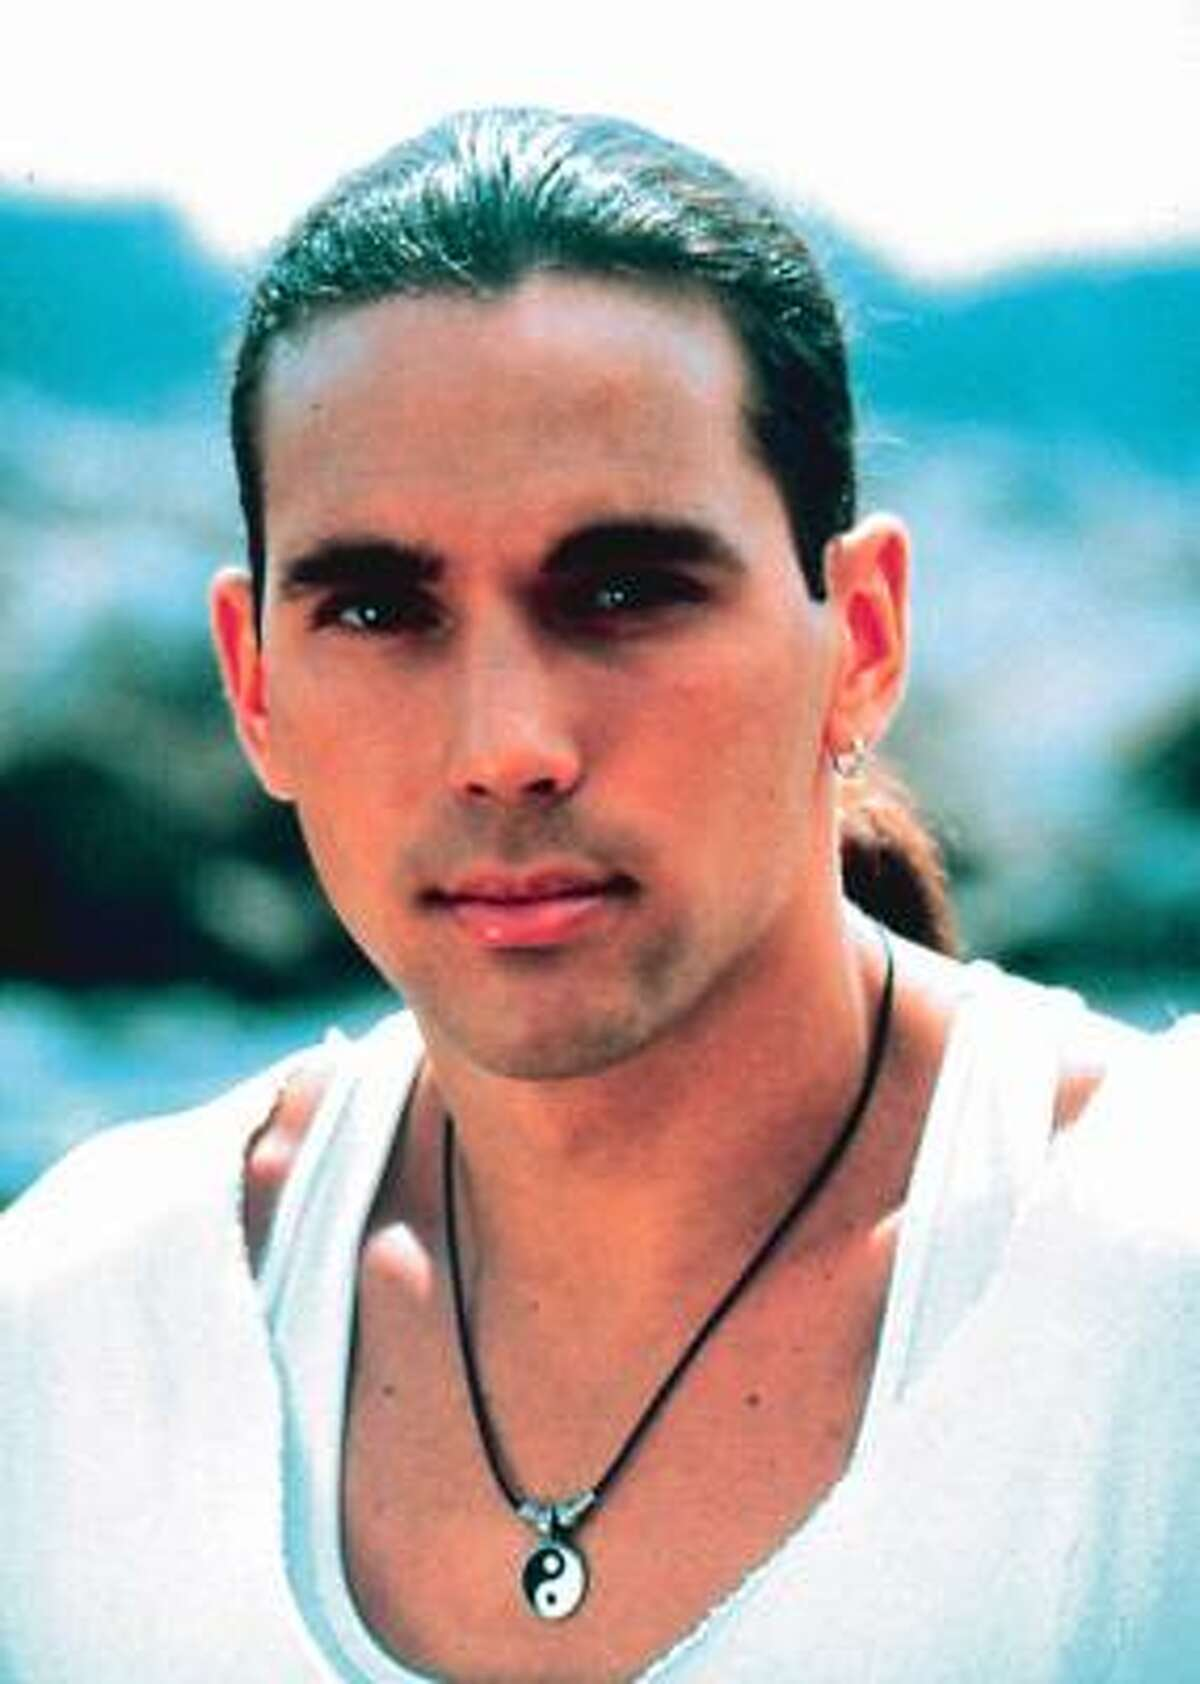 'There's nothing wrong with saying you like Power Rangers, man. Hey, we're sure not Barney,' says Jason David Frank, 21, who played Tommy the White Ranger on TV and in 'Mighty Morphin Power Rangers: The Movie.'